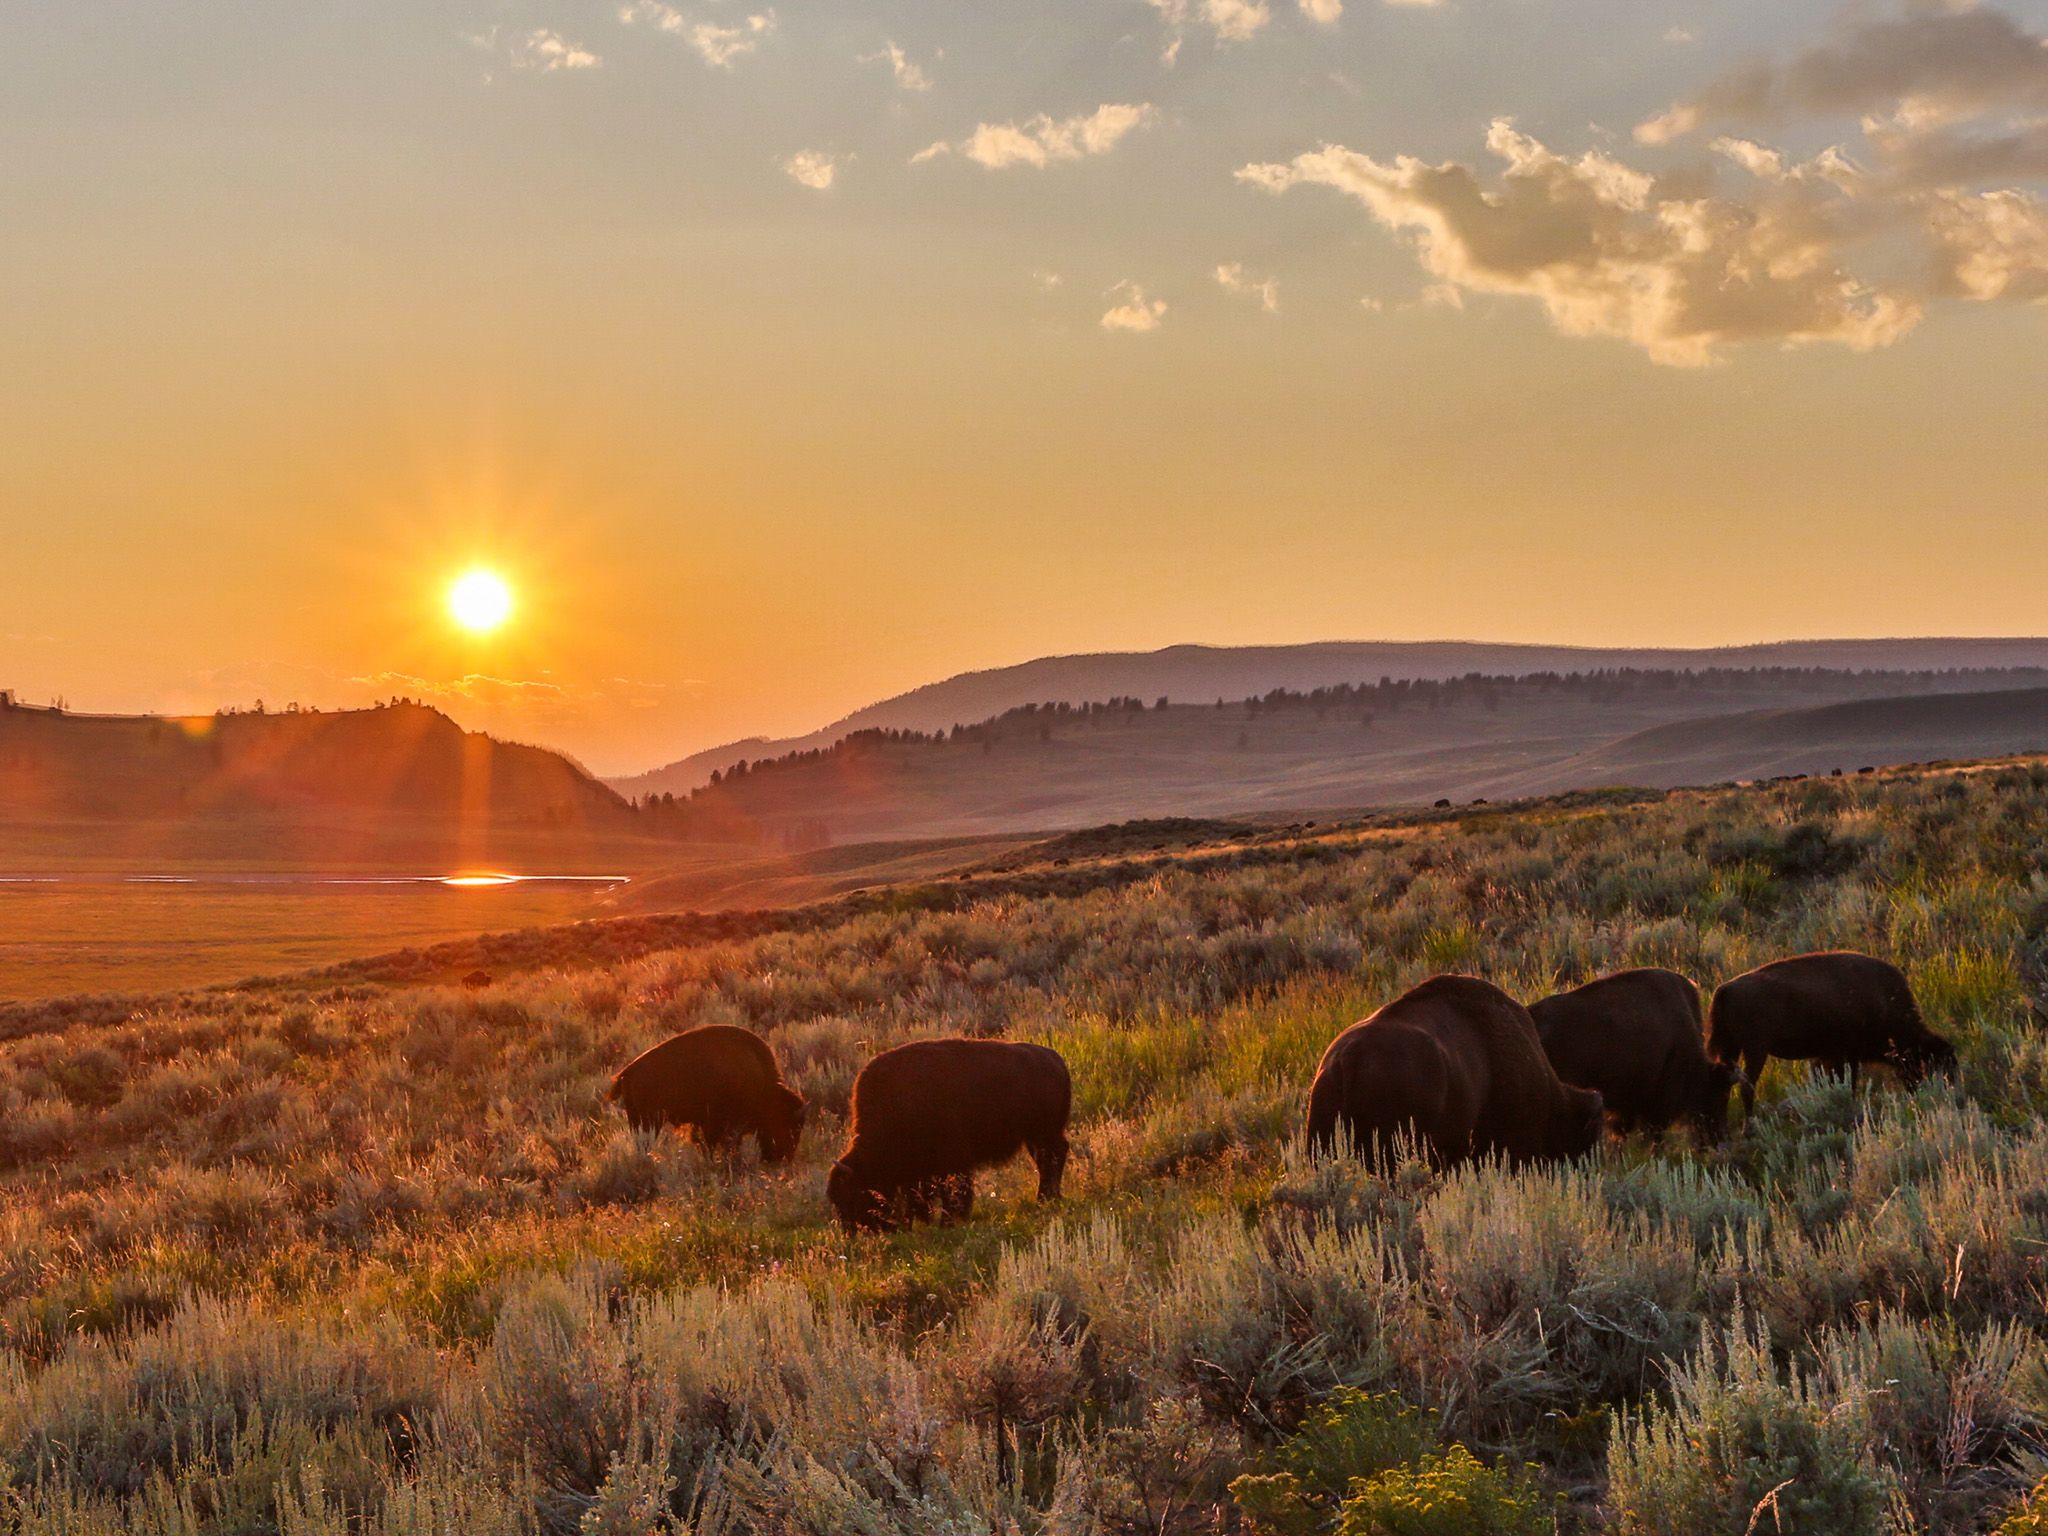 Yellowstone, Wyo.: Bison herd in summer evening light during the bison rut. This image is from Wi... [ΦΩΤΟΓΡΑΦΙΑ ΤΗΣ ΗΜΕΡΑΣ - ΑΠΡΙΛΙΟΥ 2015]